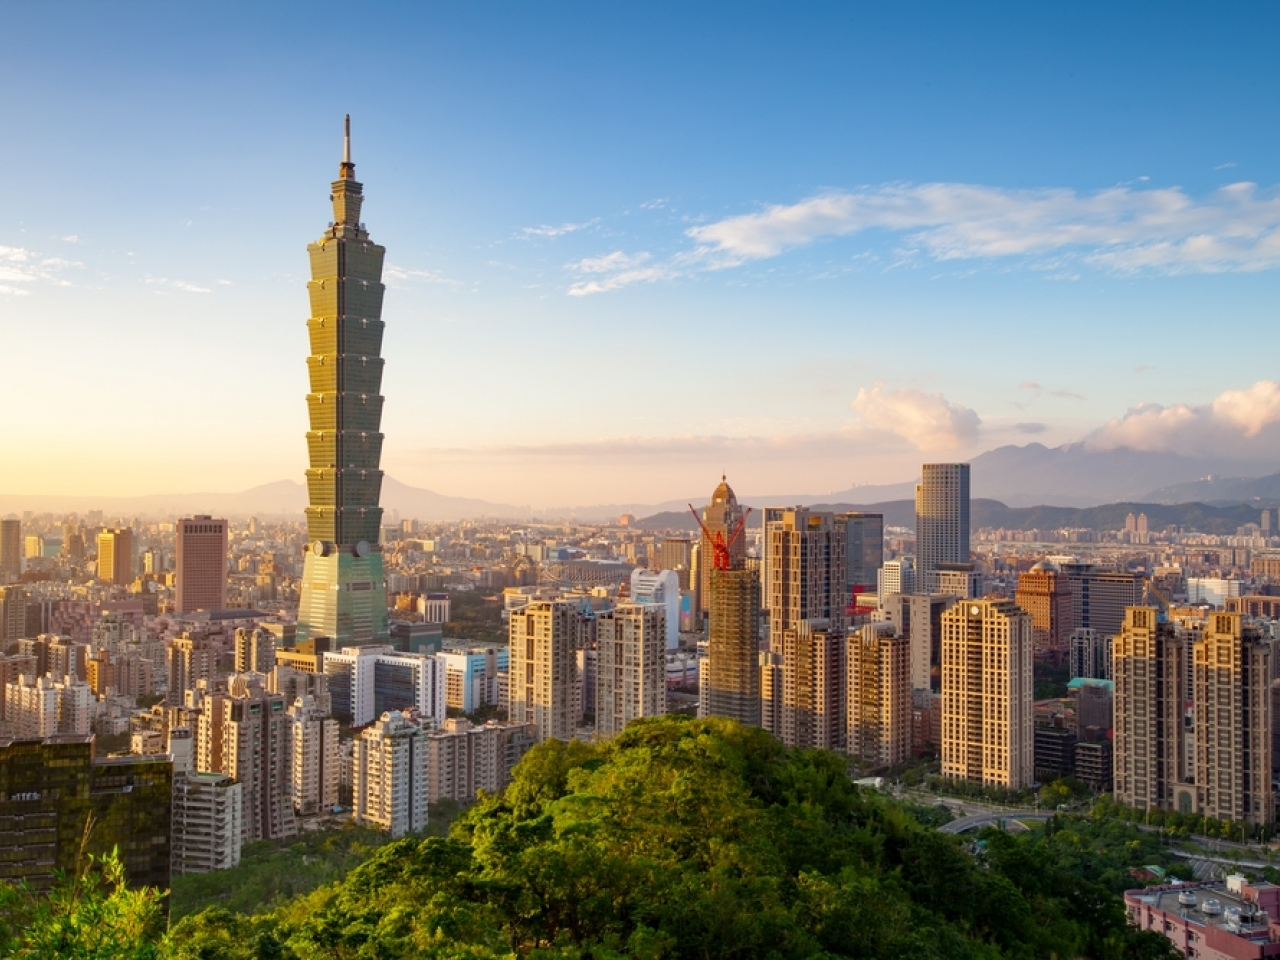 There's been a small rise in domestic Covid infections in Taiwan recently. Image: Shutterstock